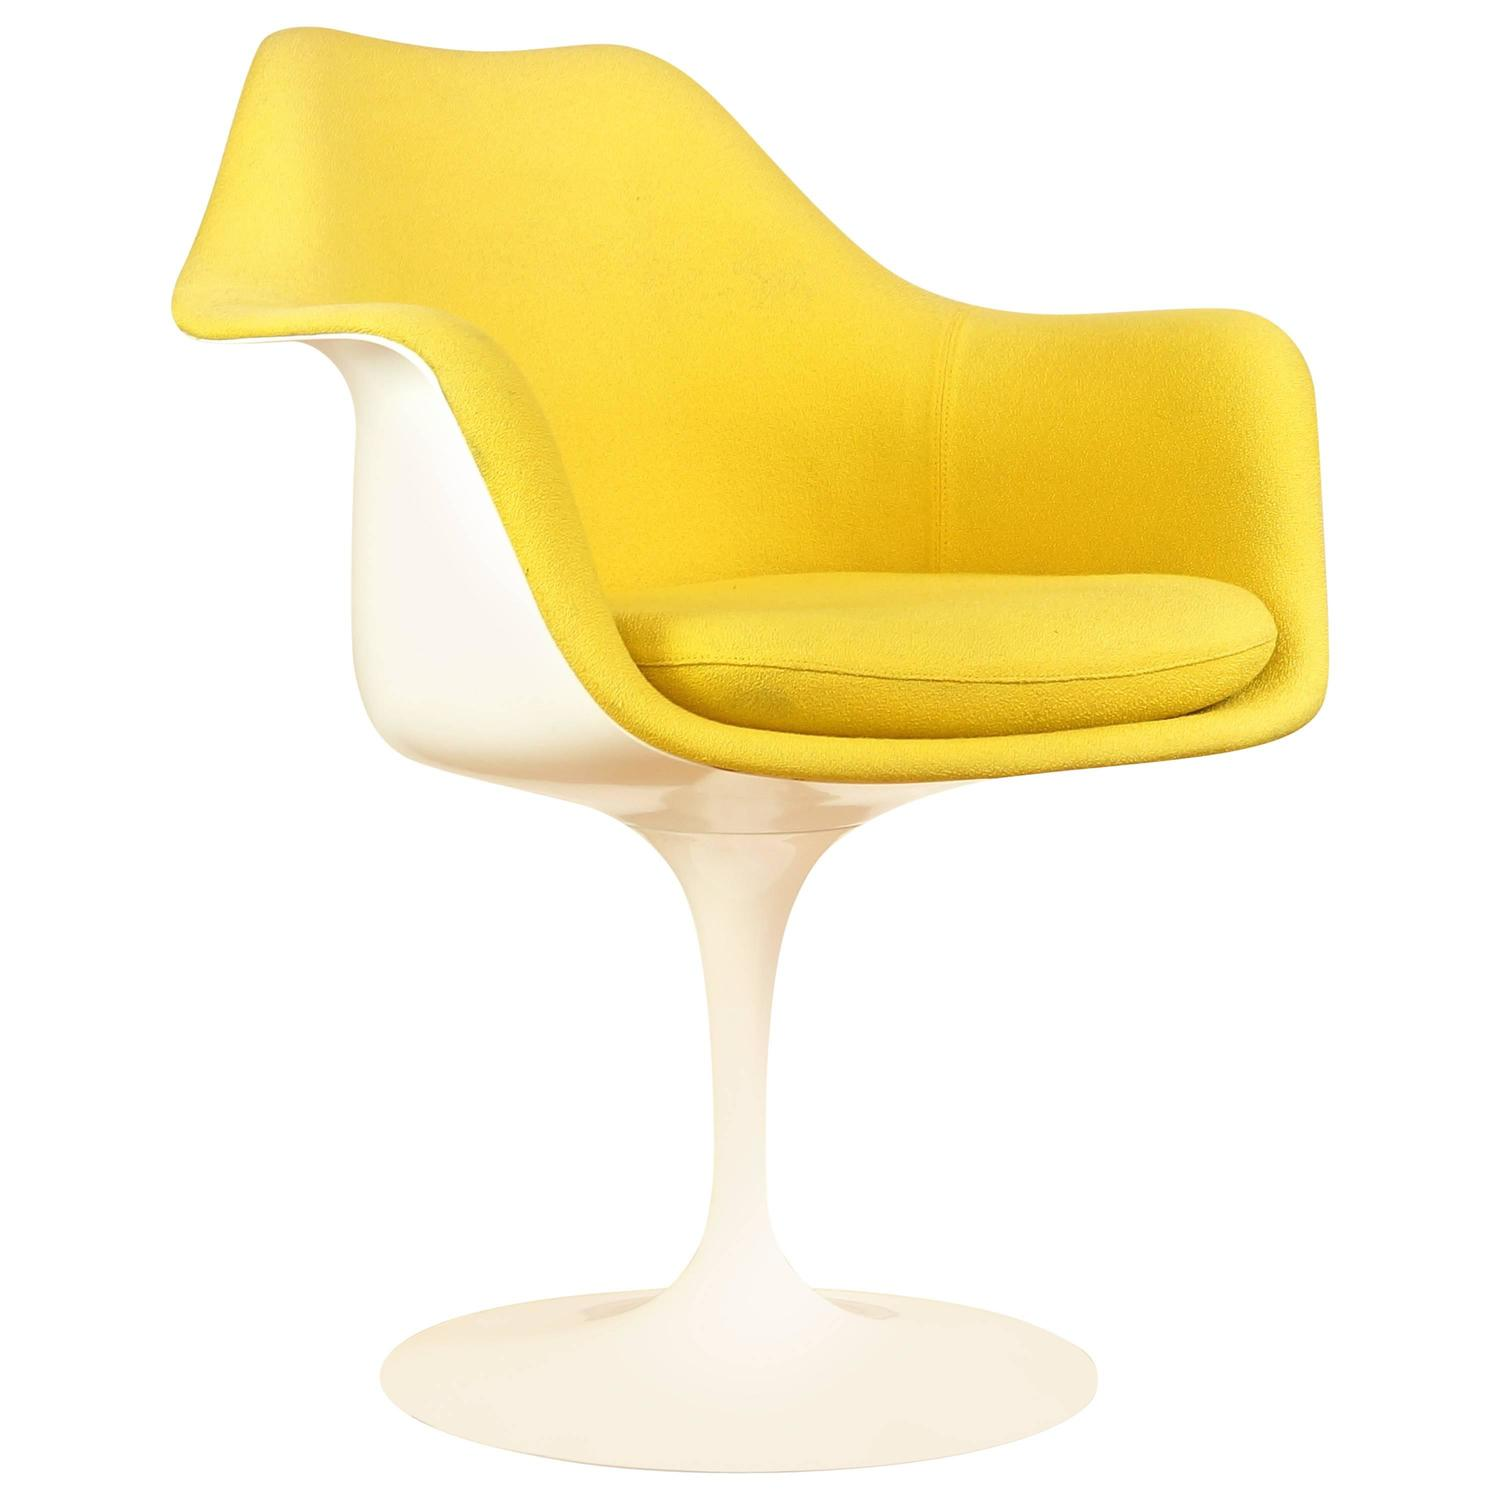 Vintage tulip chair or armchair by eero saarinen for knoll for Eero saarinen tulip armchair